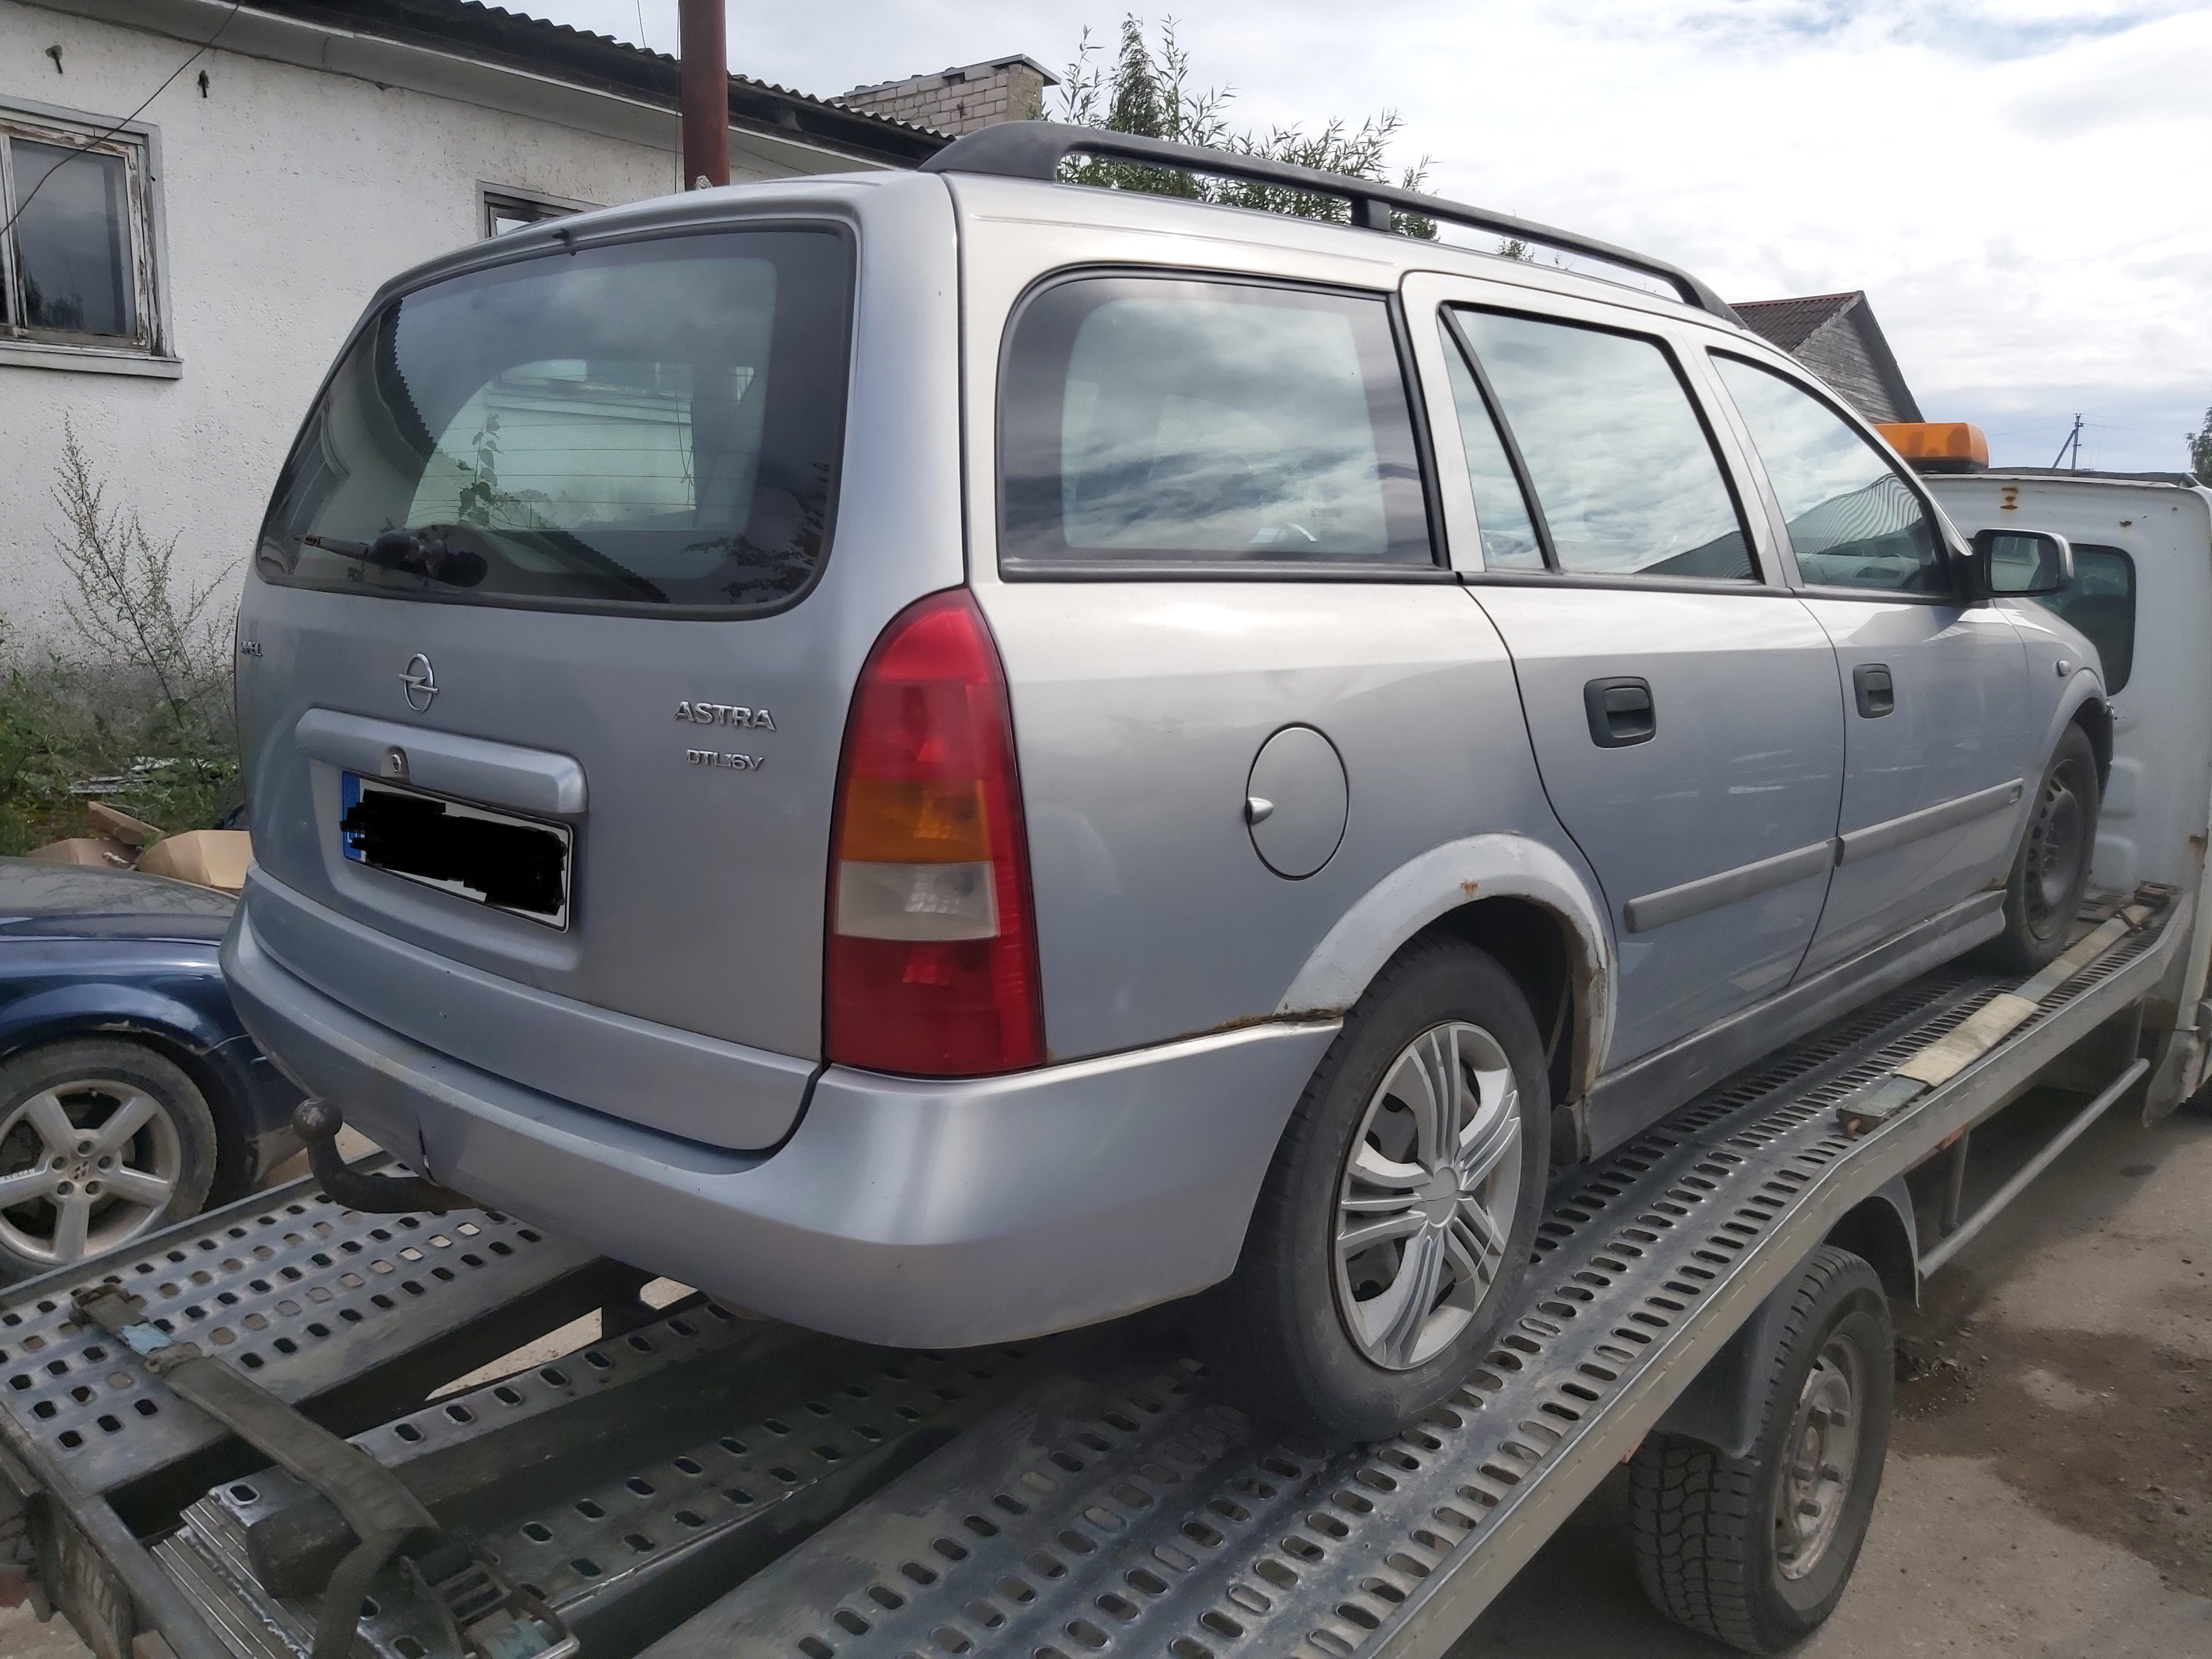 Used Car Parts Foto 6 Opel ASTRA 2000 2.0 Mechanical Universal 4/5 d. Grey 2020-7-30 A5479